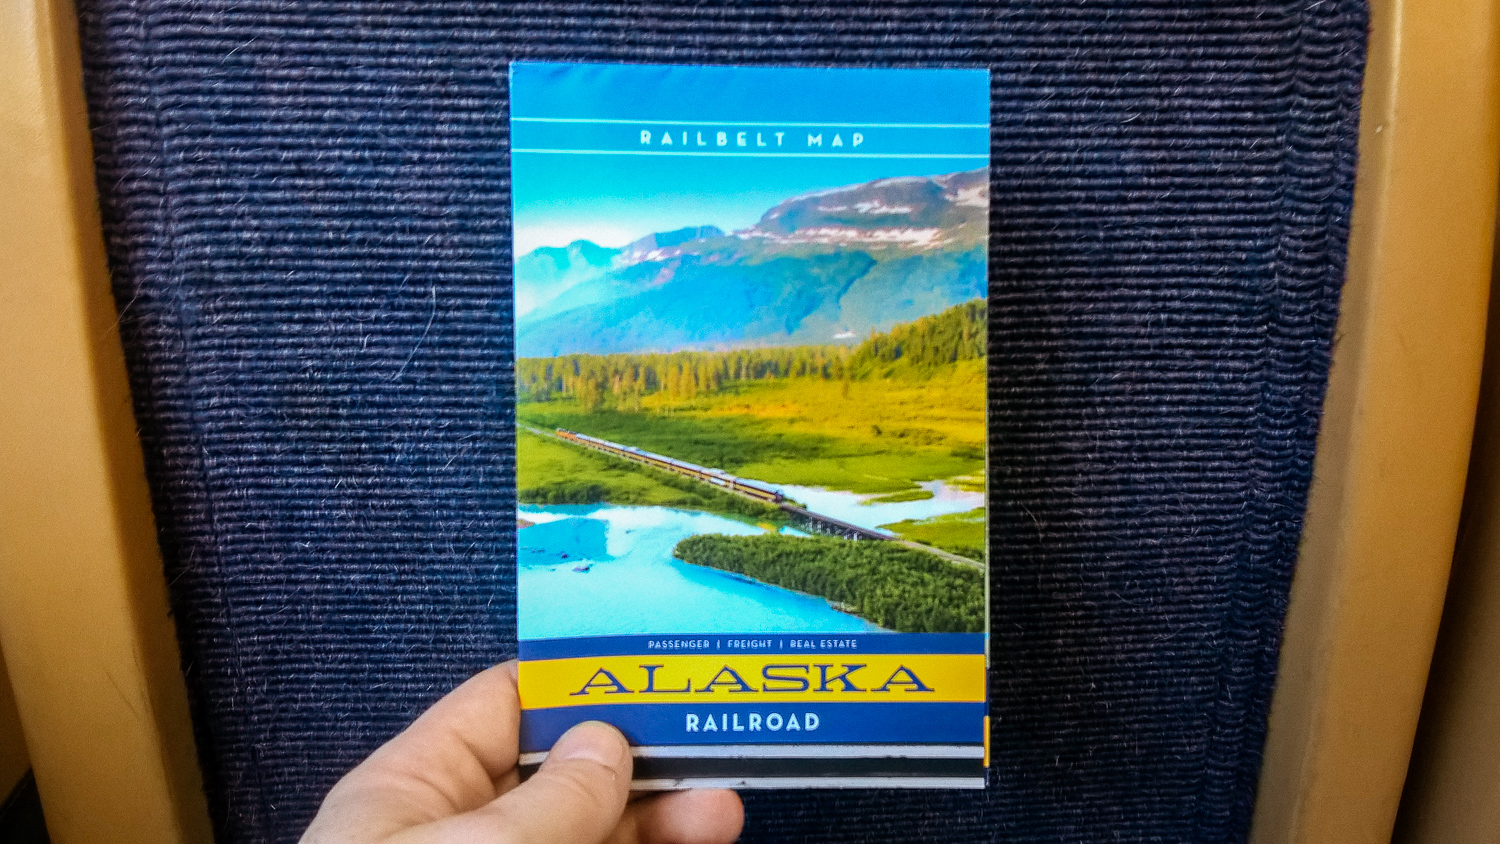 Even the map is really pretty on the Alaskan railroad.(Shot with the Nokia Lumia 640 XL)